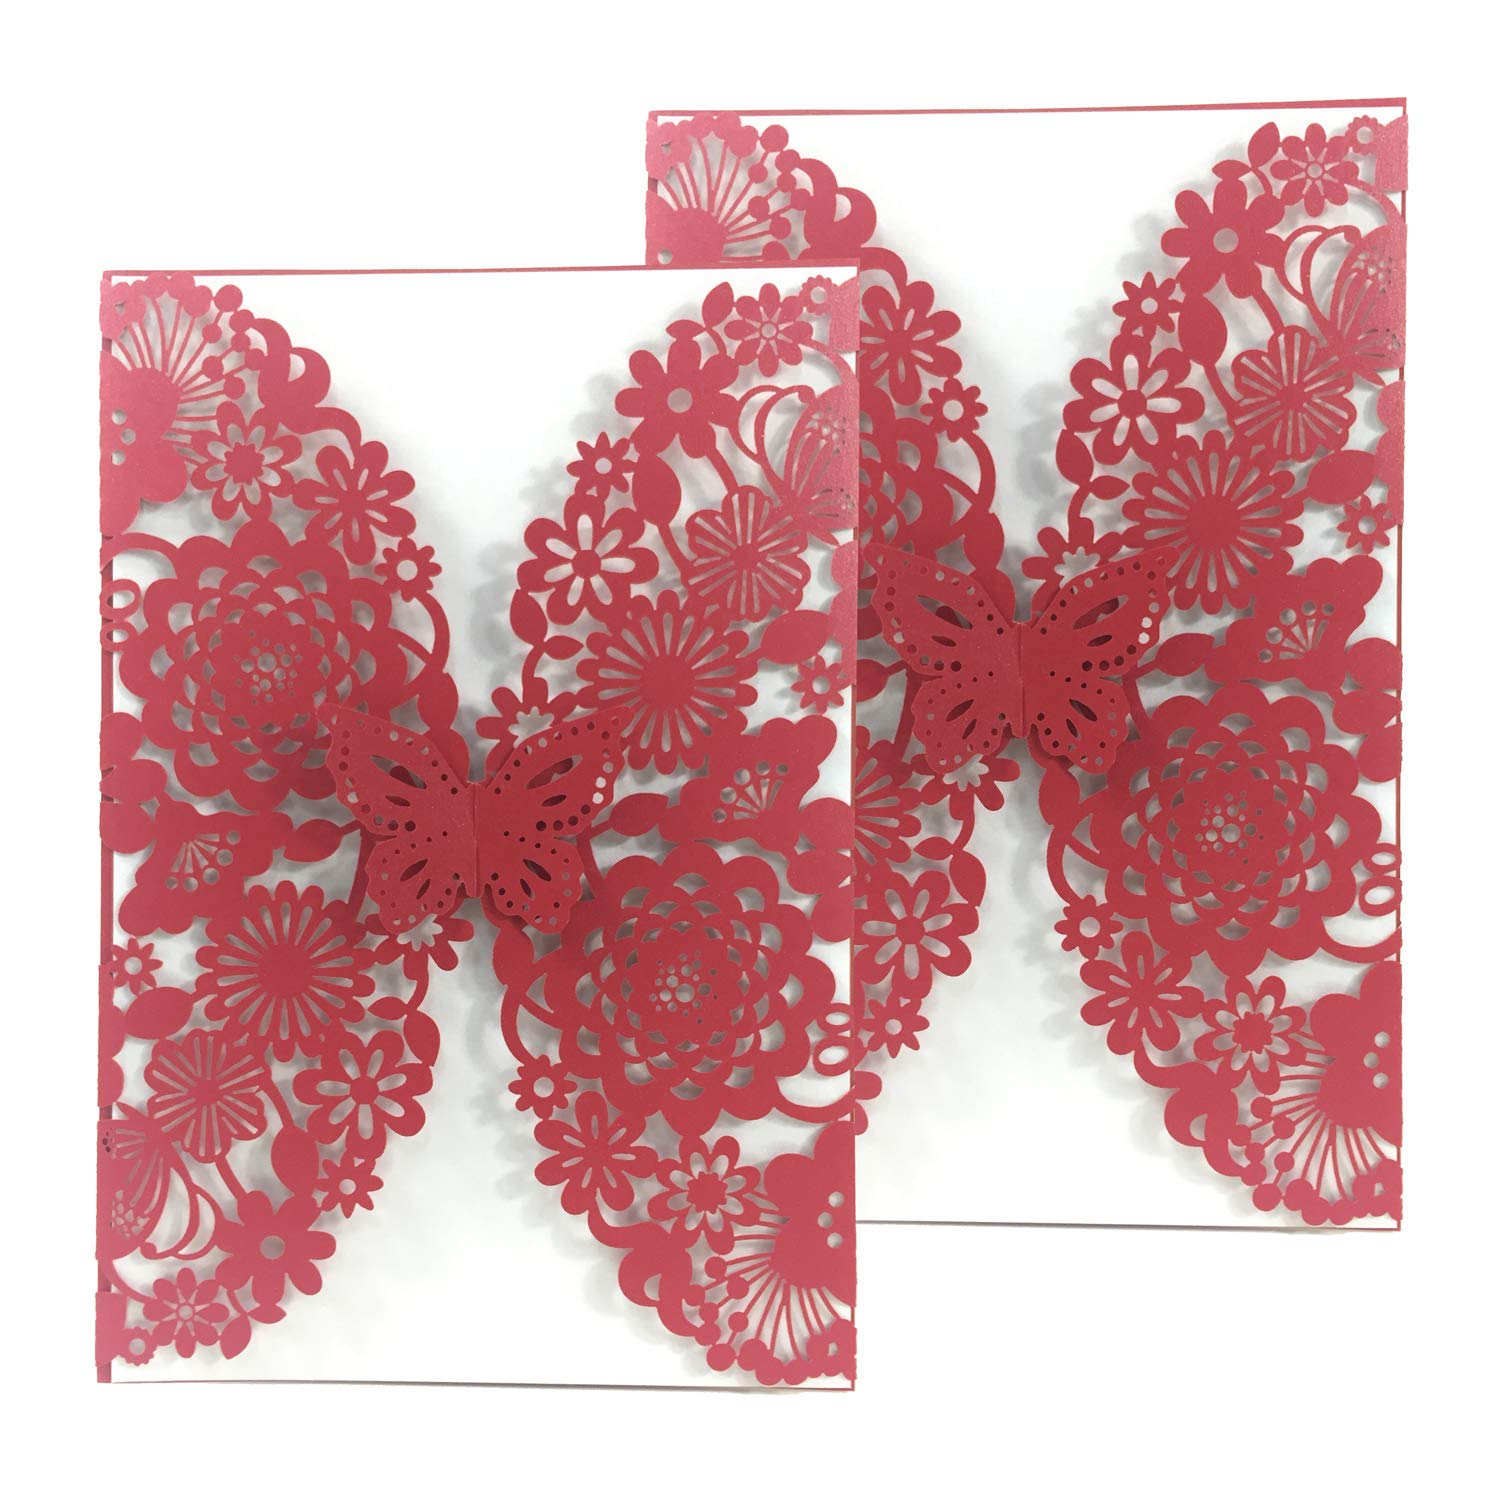 50PCS Pear Paper Laser Cut Bronzing Wedding Baby Shower Invitation Cards with Butterfly Hollow Favors Invitation Cardstock for Engagement Birthday Graduation (Red) Kate Princess CX16